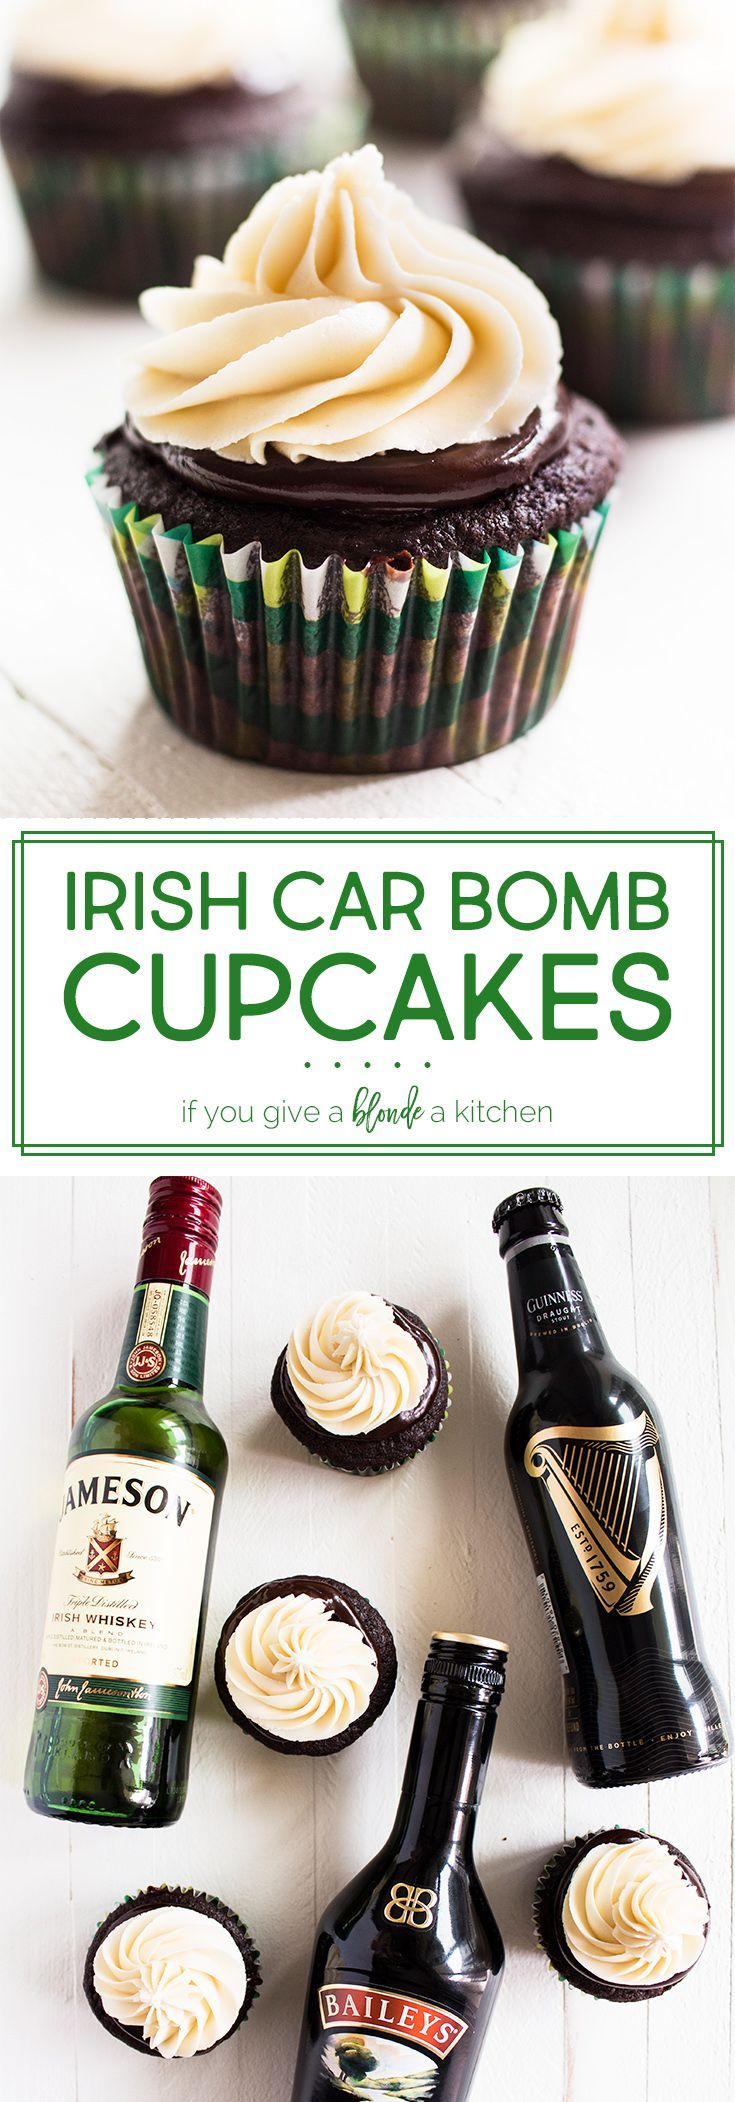 Photo of Irish Car Bomb Cupcakes | If You Give a Blonde a Kitchen